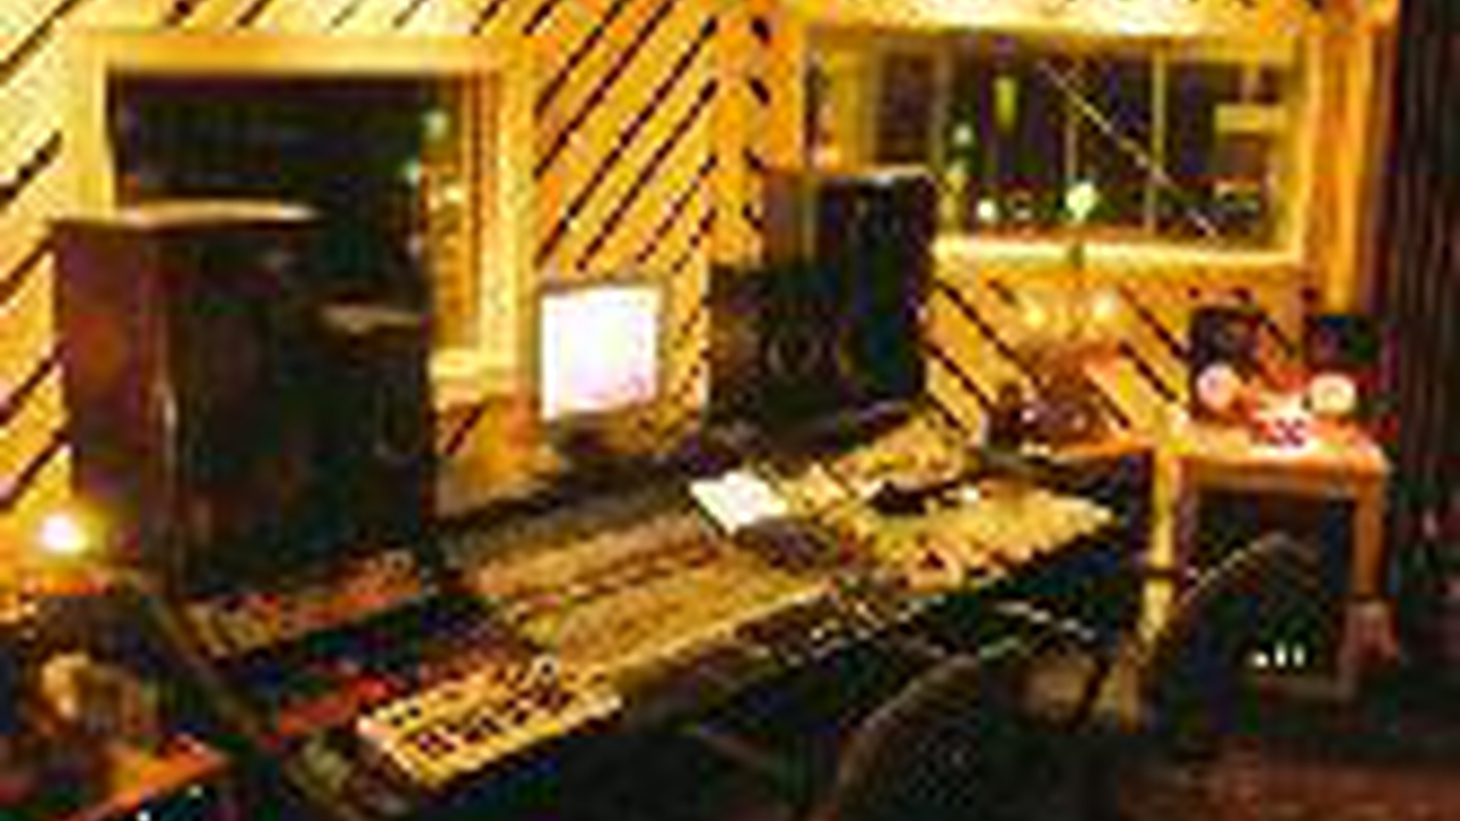 For decades, the record industry has been in the business of making hit records. It all starts with the executive who has the vision and talent to recognize a star in the making. Then, hundreds of thousands of dollars are spent recording to get the sound just right. Once an album is finished, remixers are often called upon to shift the tempo and create new beats, in the hopes that one of these renditions will hit big with the public...